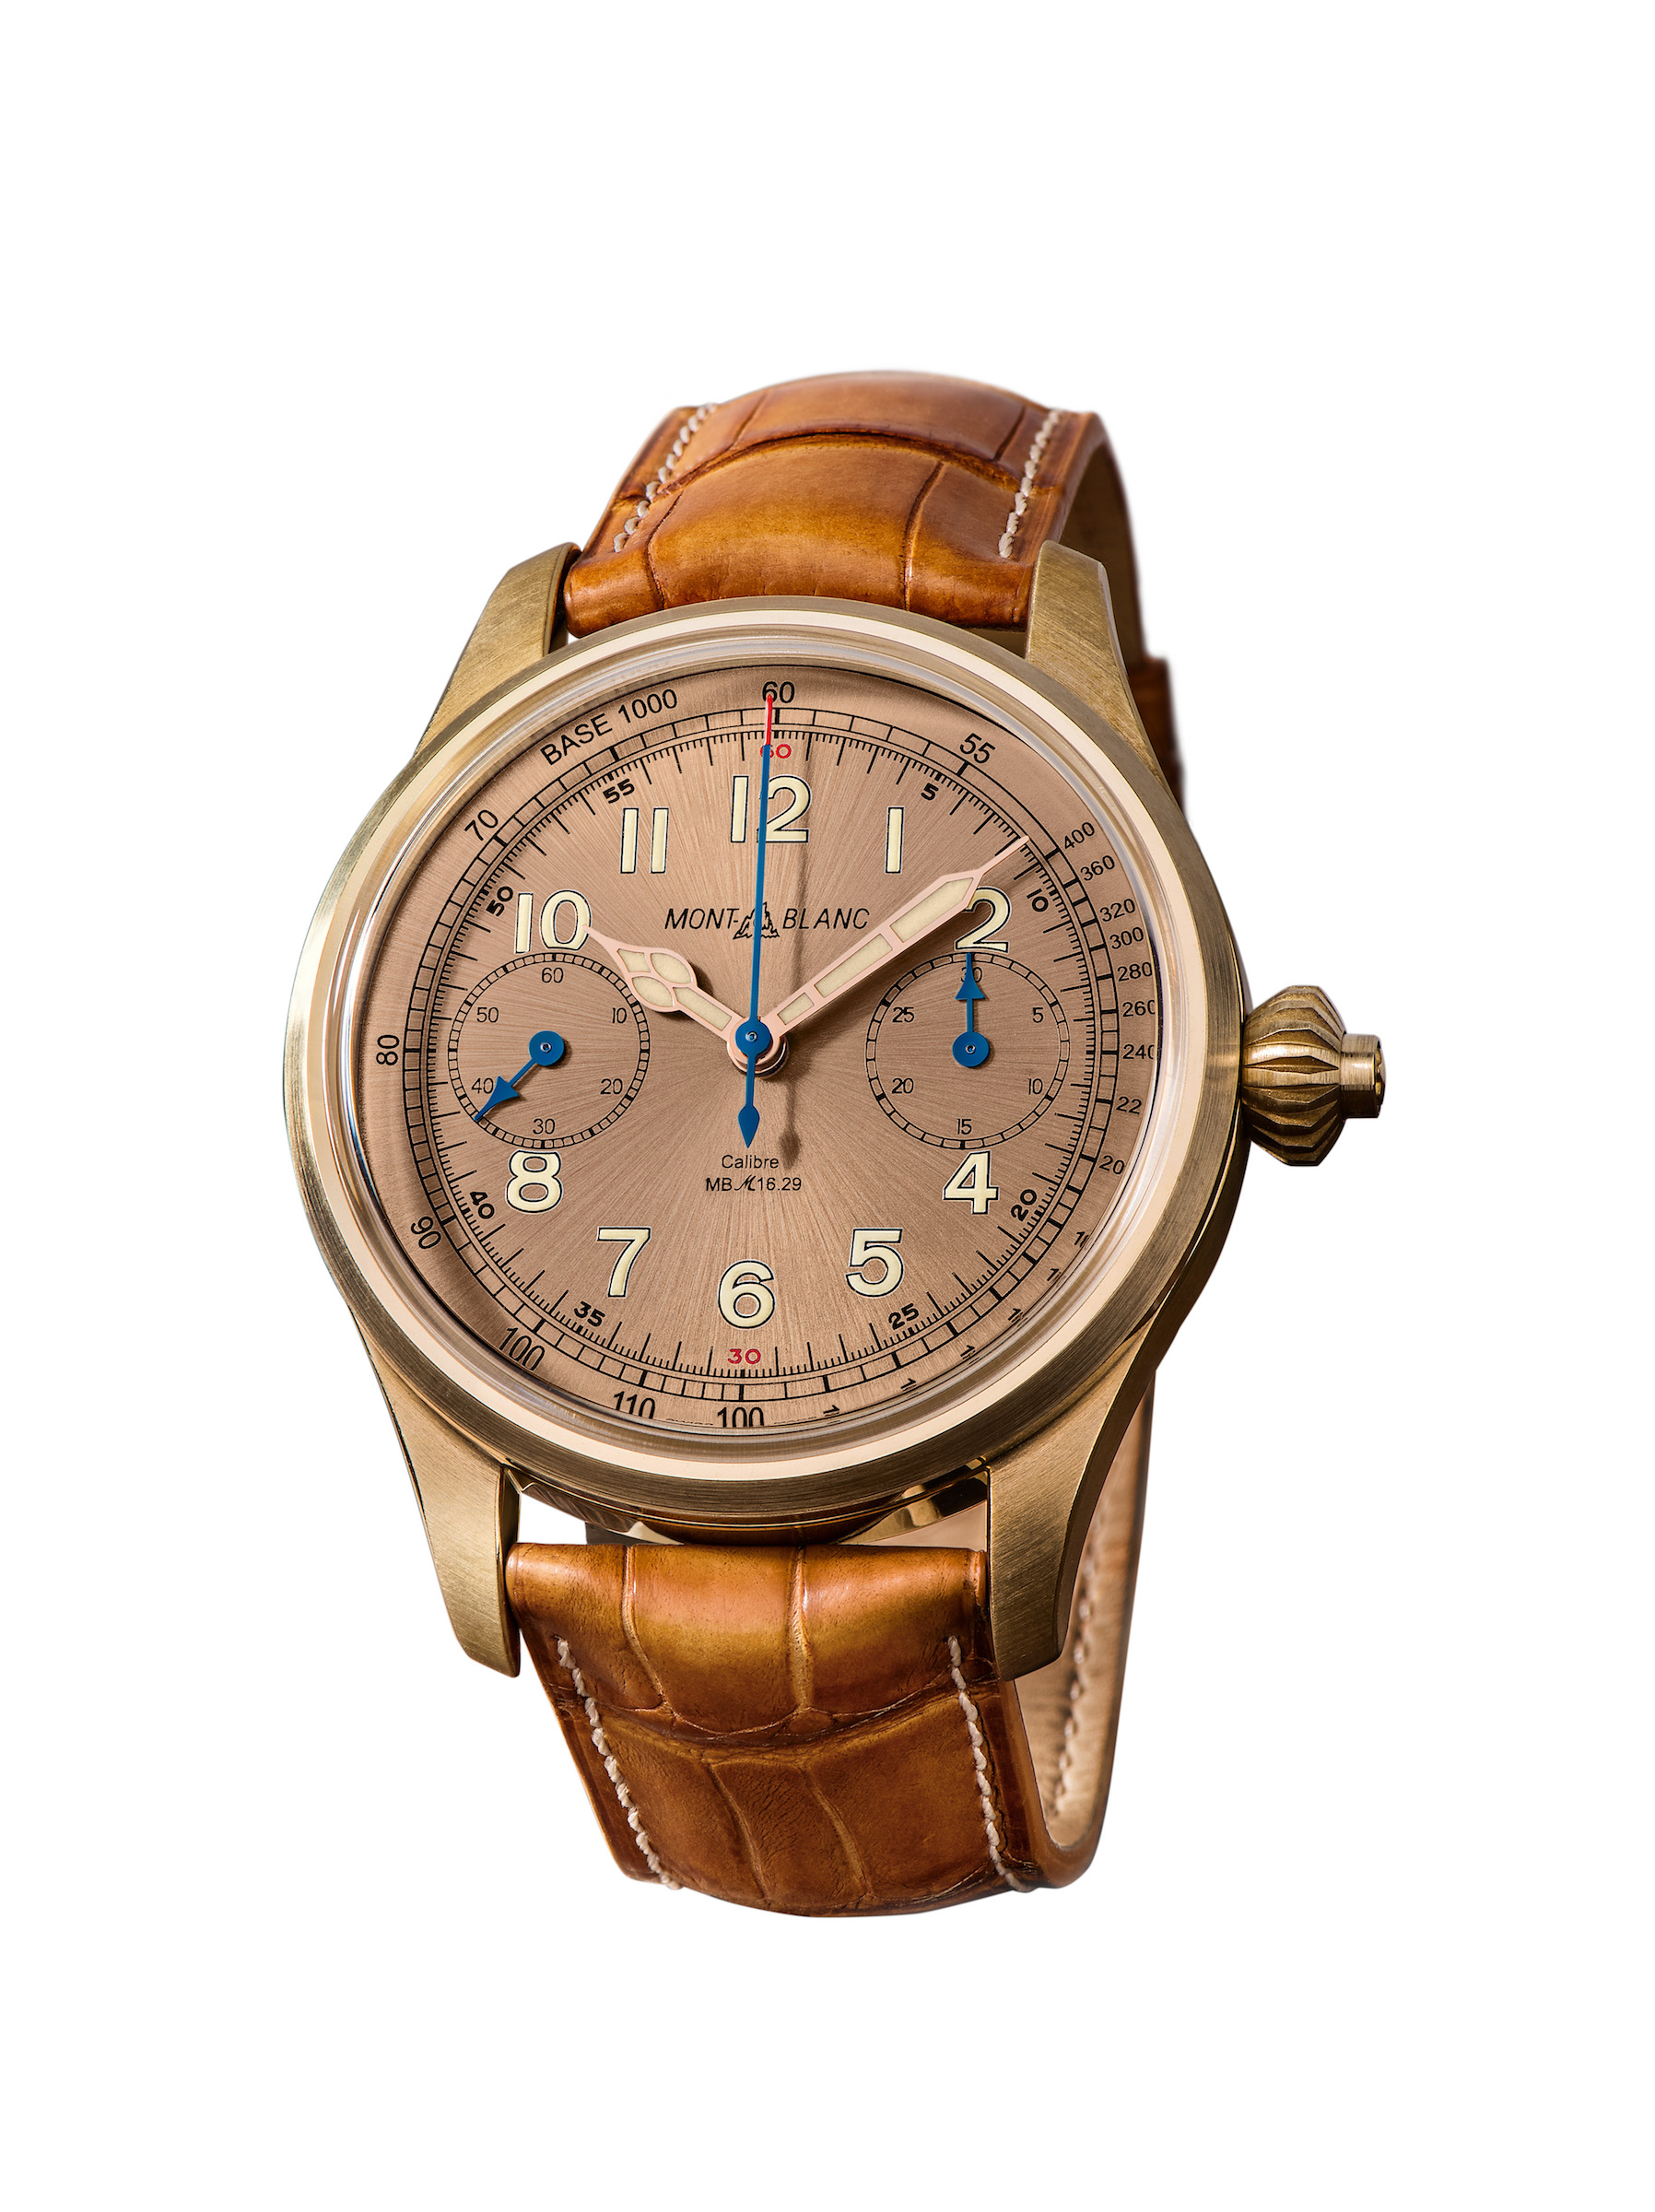 Die Montblanc 1858 Chronograph Tachymeter Limited Edition 100